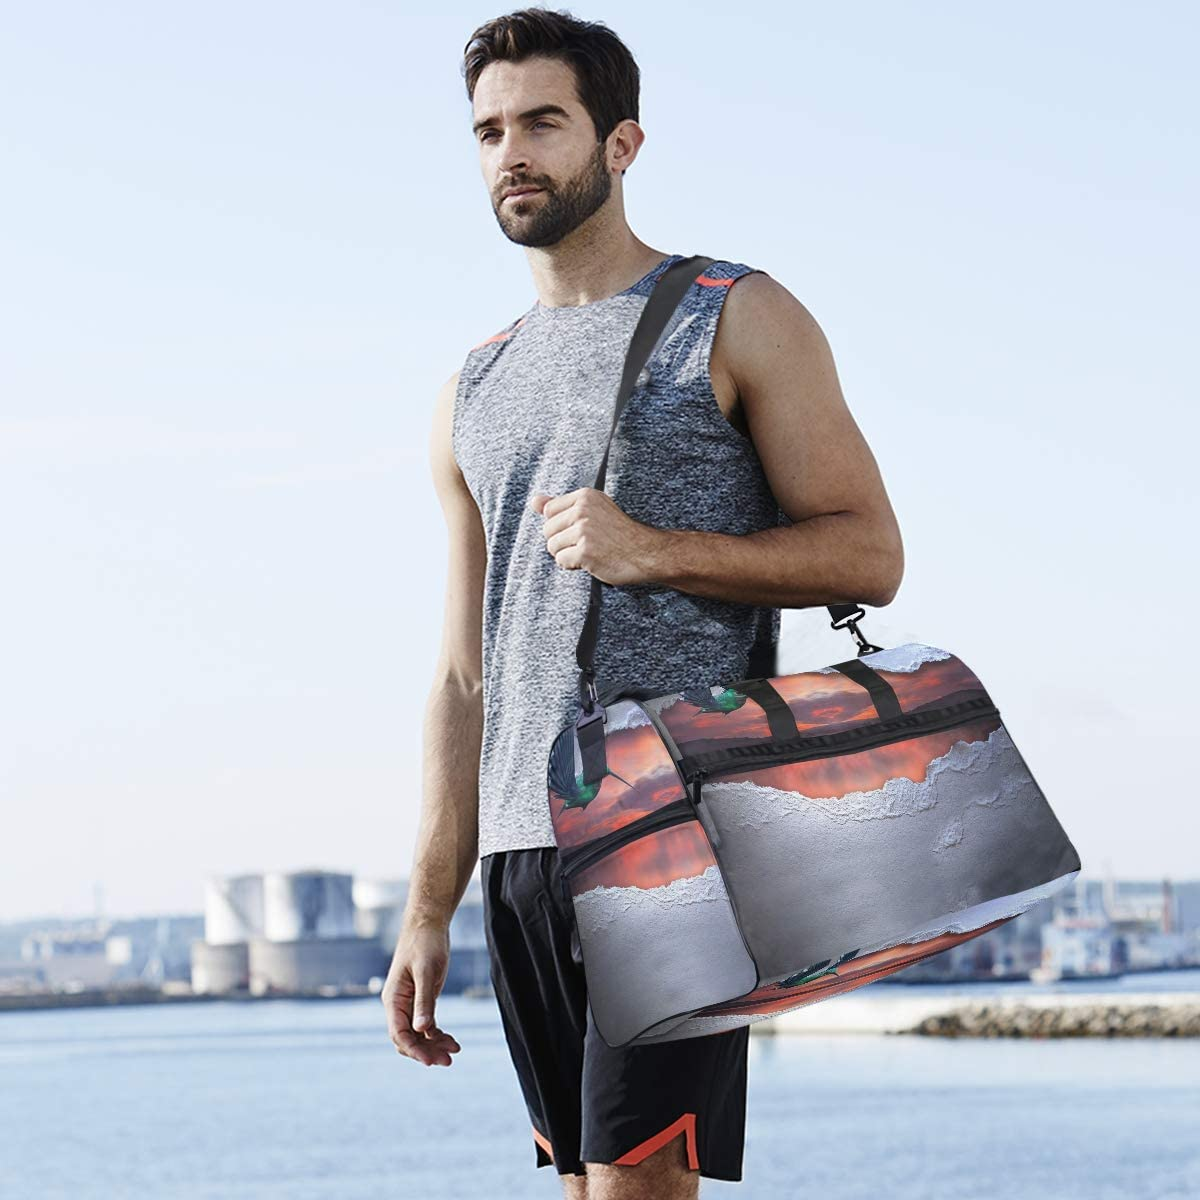 MUOOUM Landscape Scenery Bird Large Duffle Bags Sports Gym Bag with Shoes Compartment for Men and Women